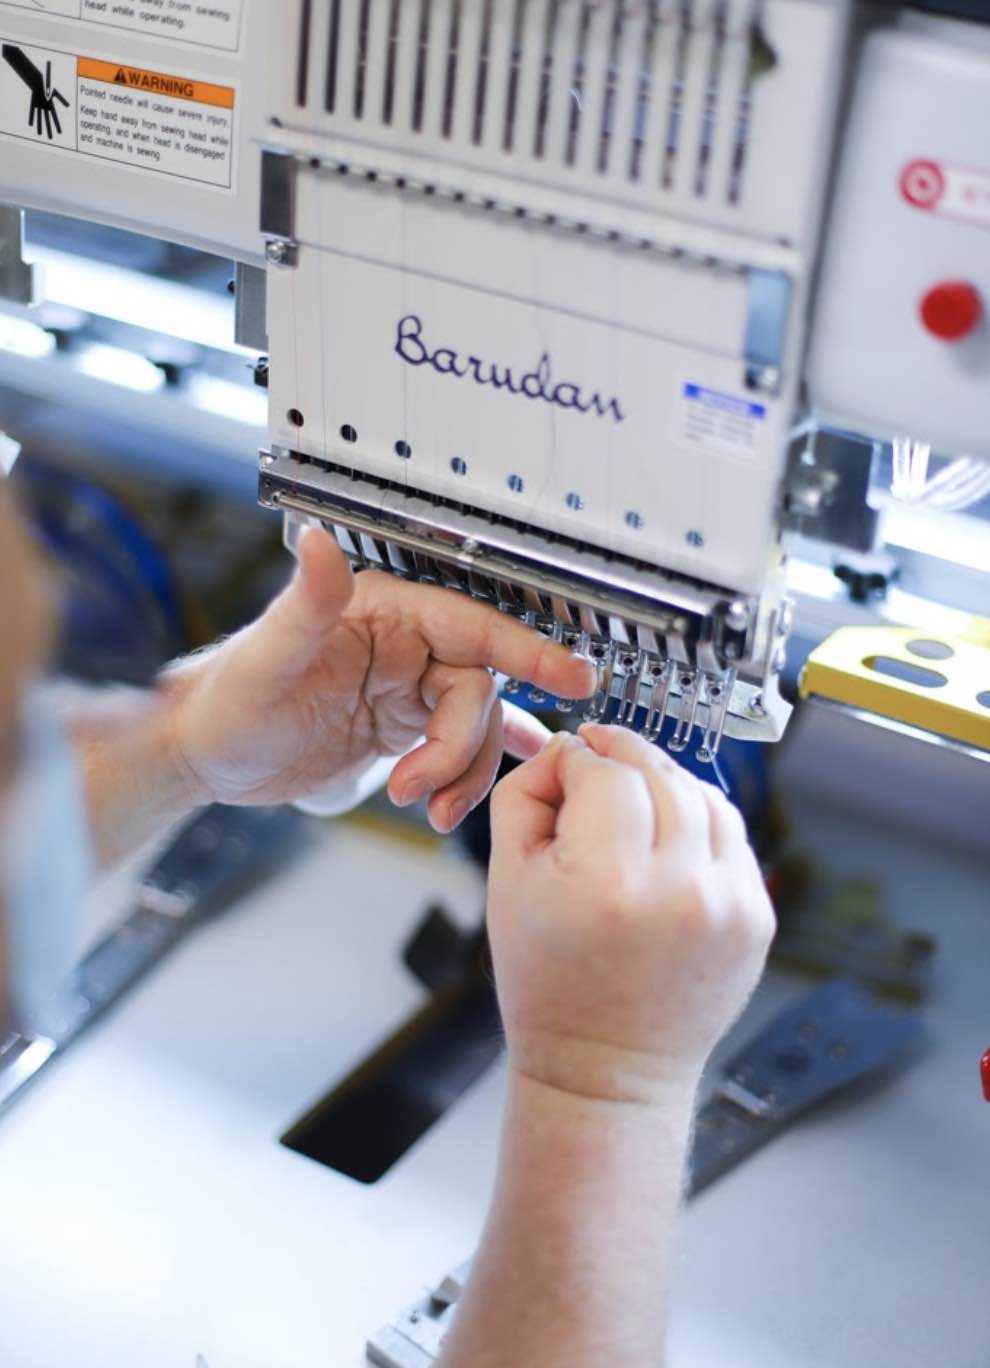 Man threads needle for embroidery machine